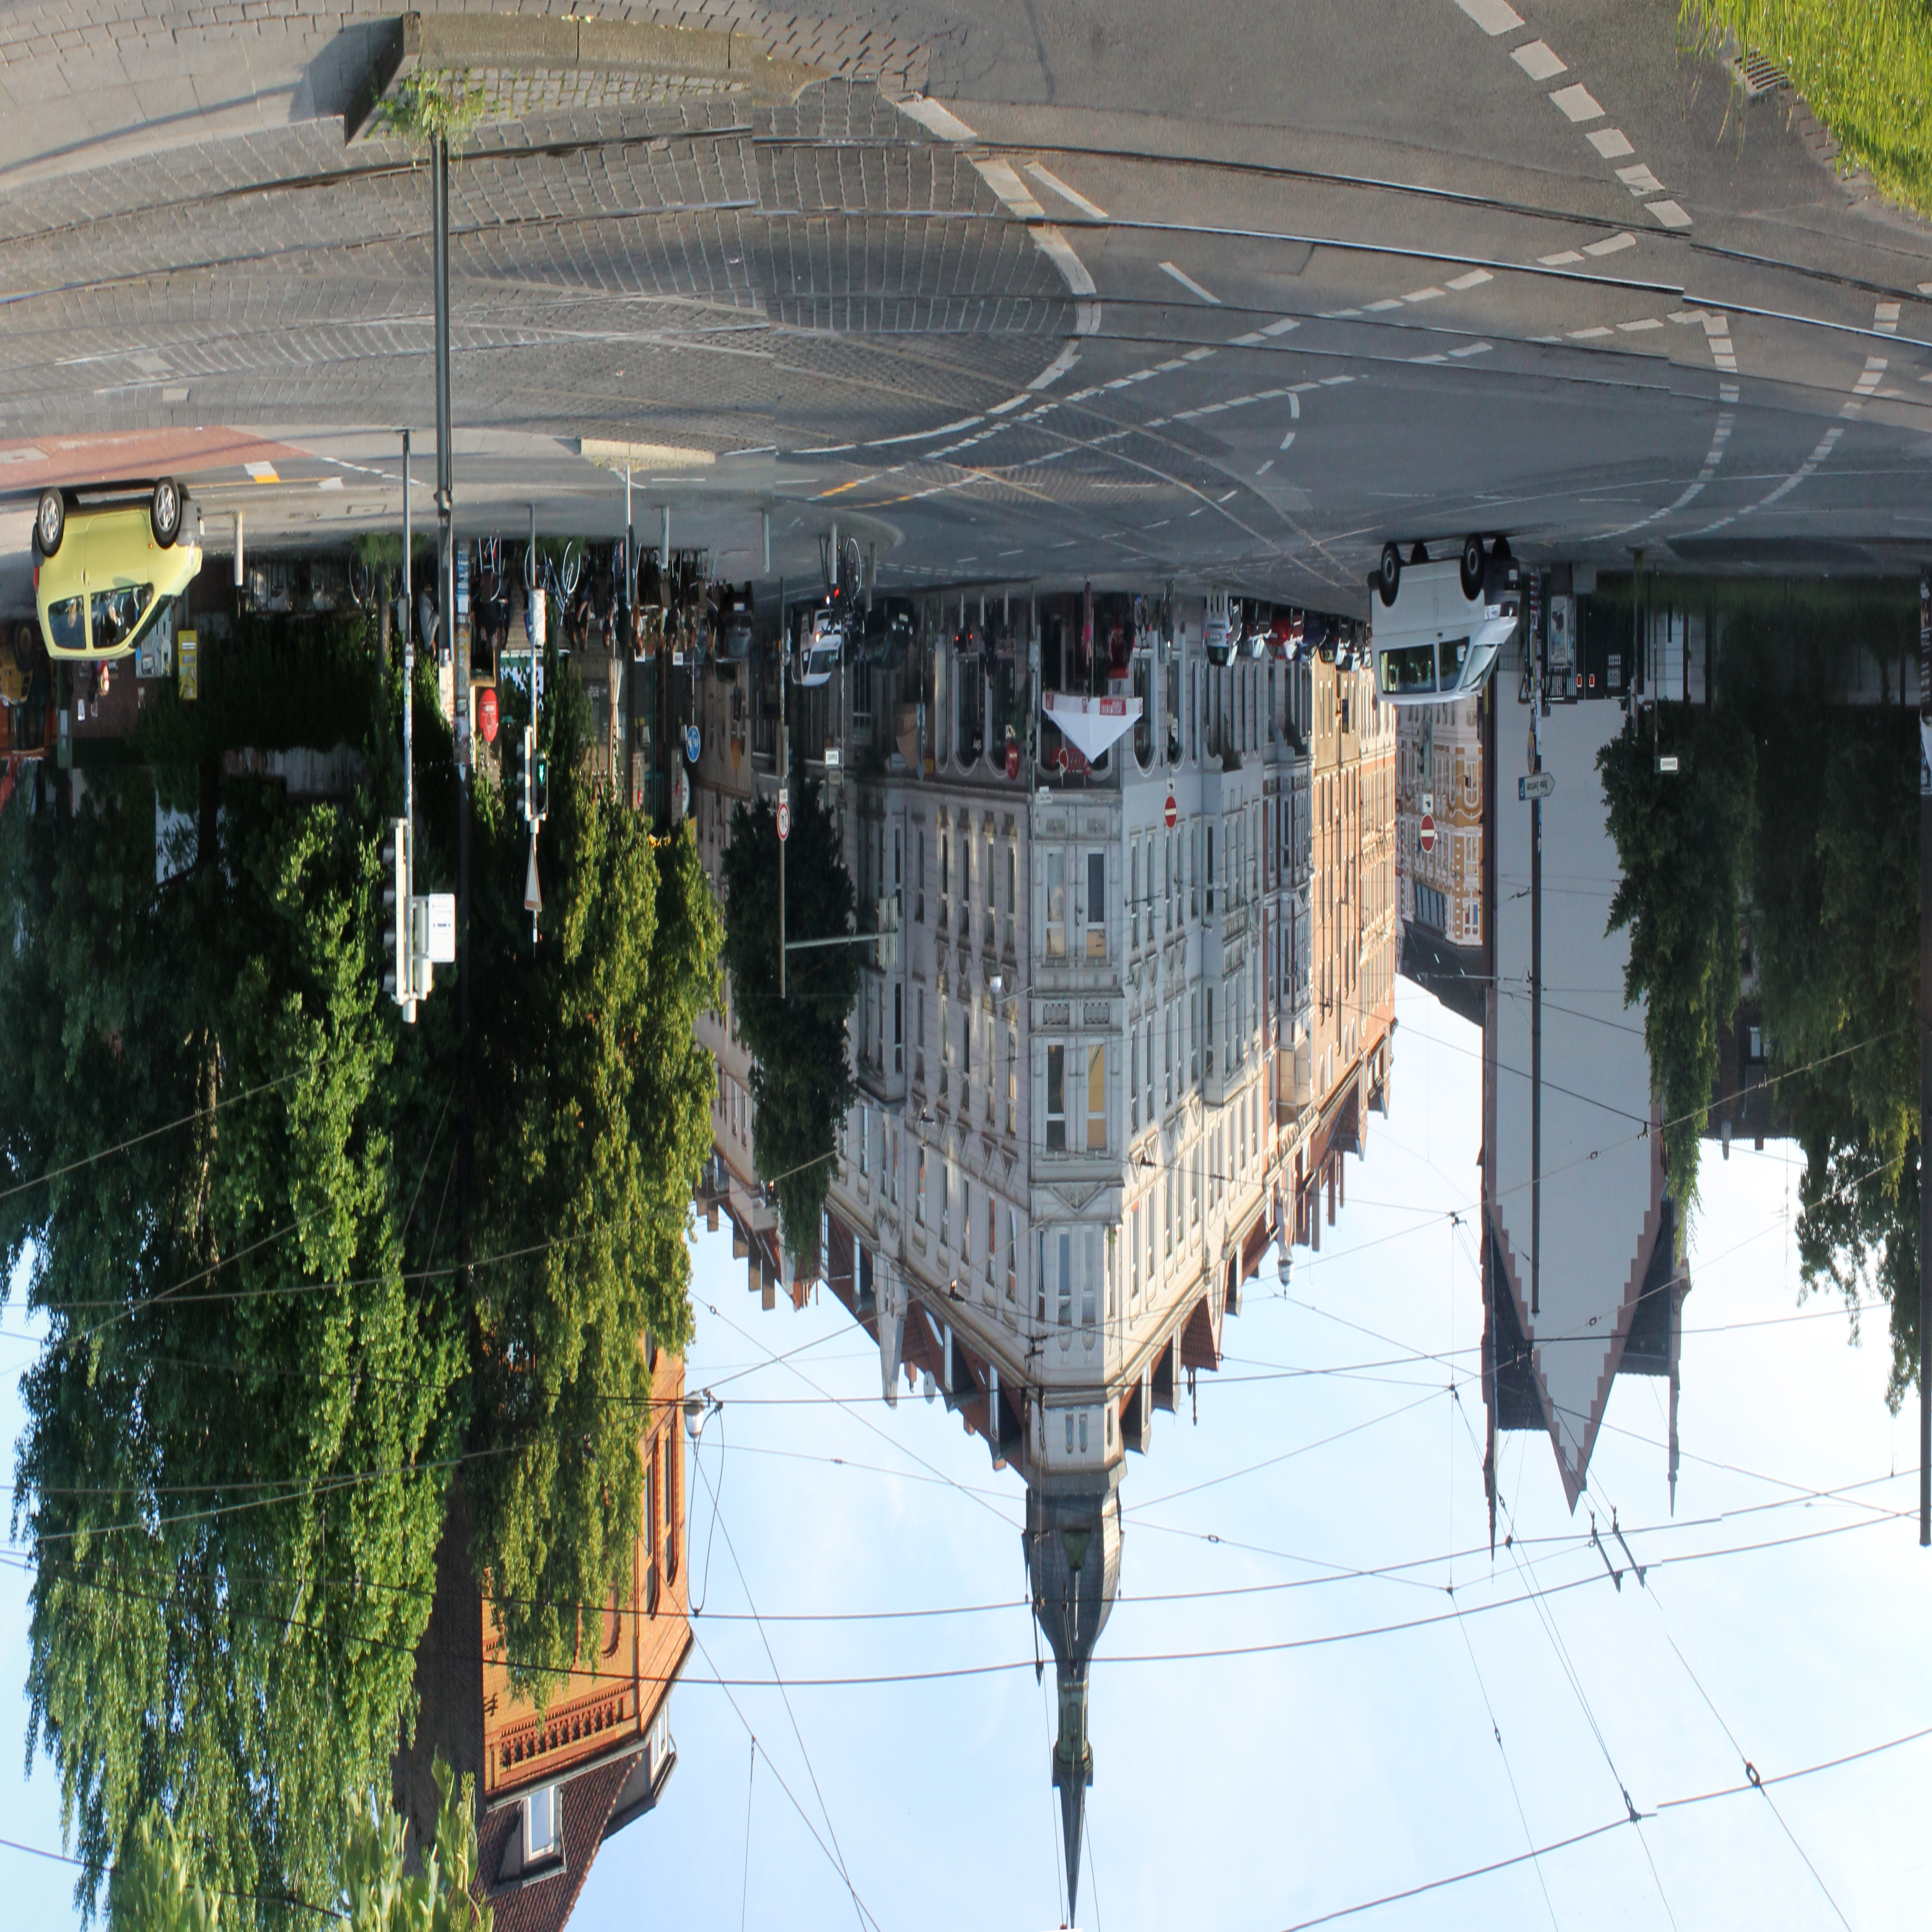 Picture of TURN THE PHOTO UPSIDE DOWN